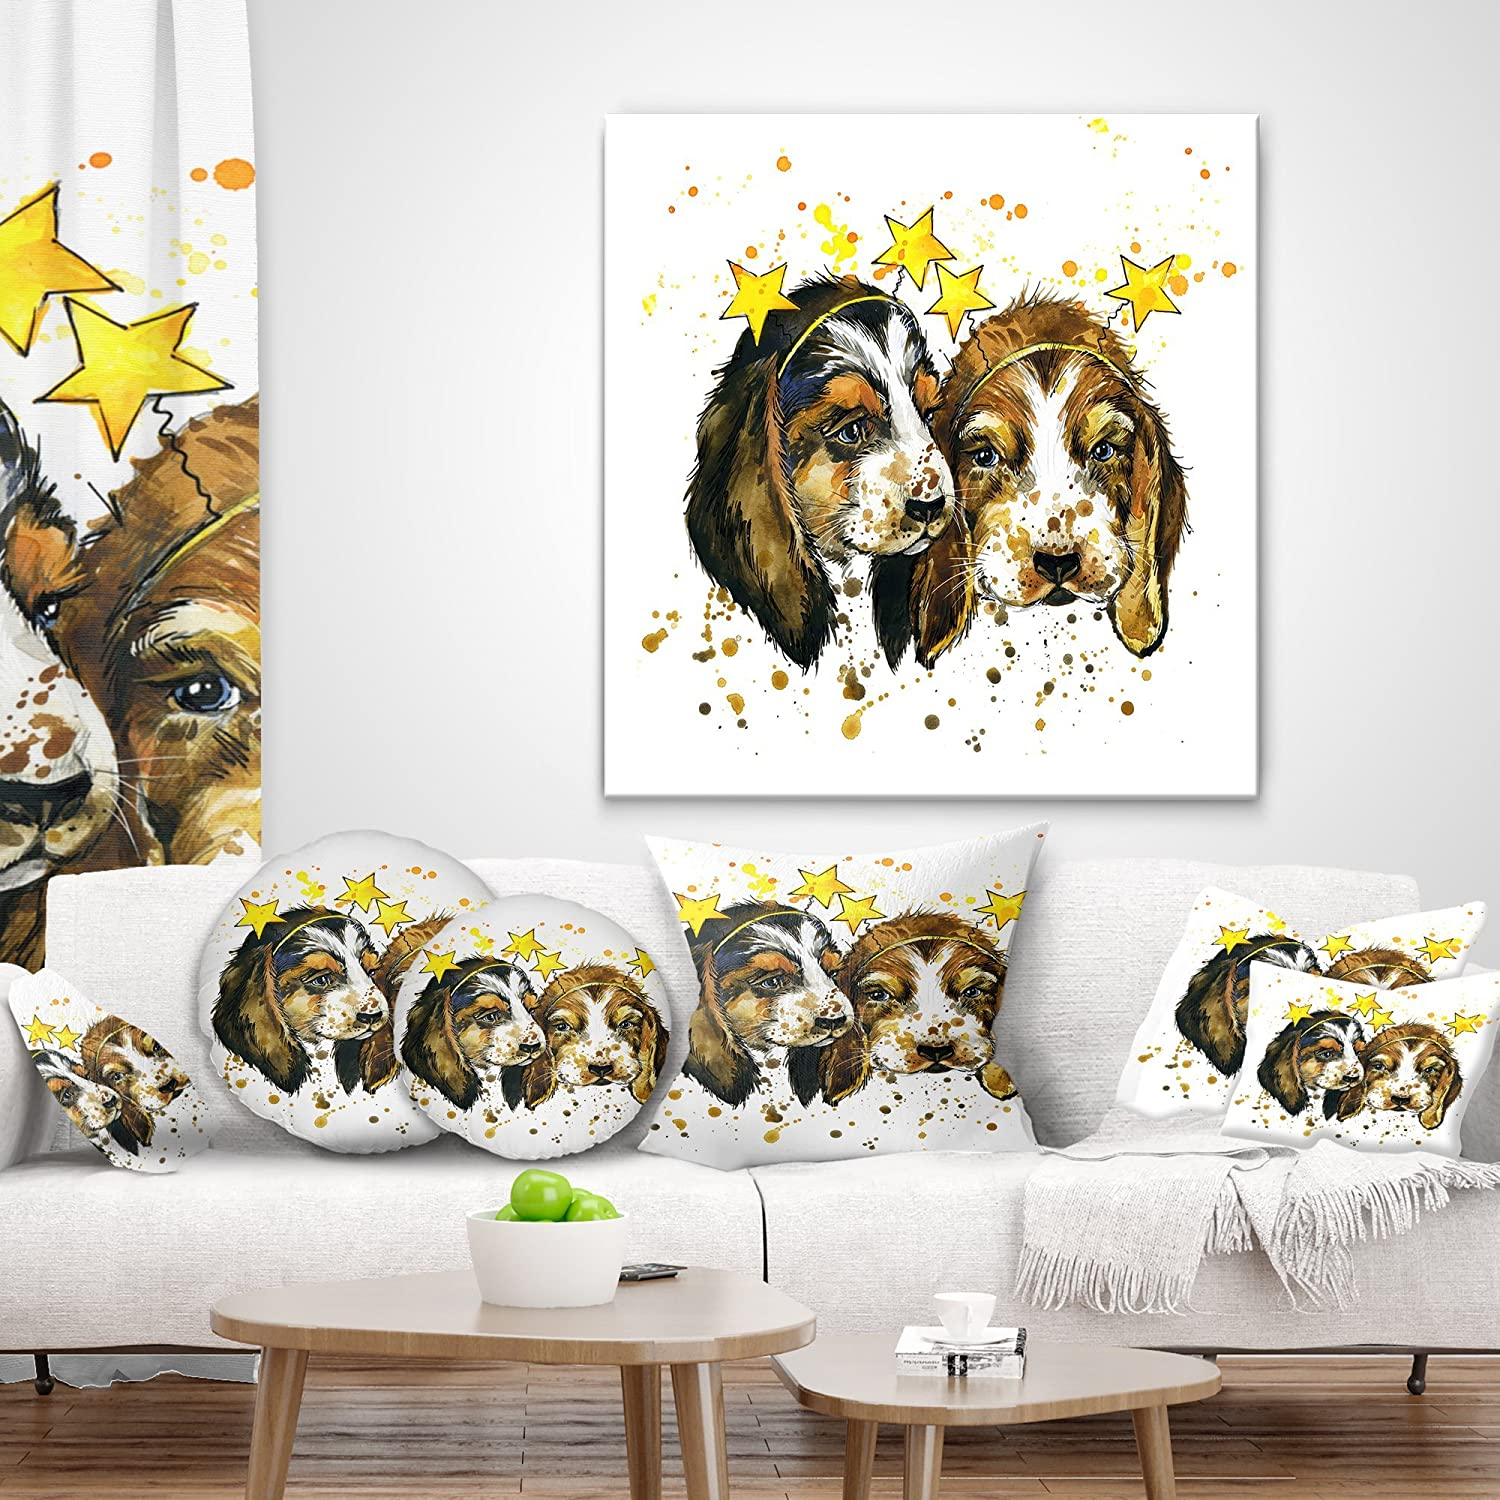 in x 16 in Sofa Throw Pillow 16 in Designart CU13229-16-16 Funny Puppy Dogs Watercolor Contemporary Animal Cushion Cover for Living Room